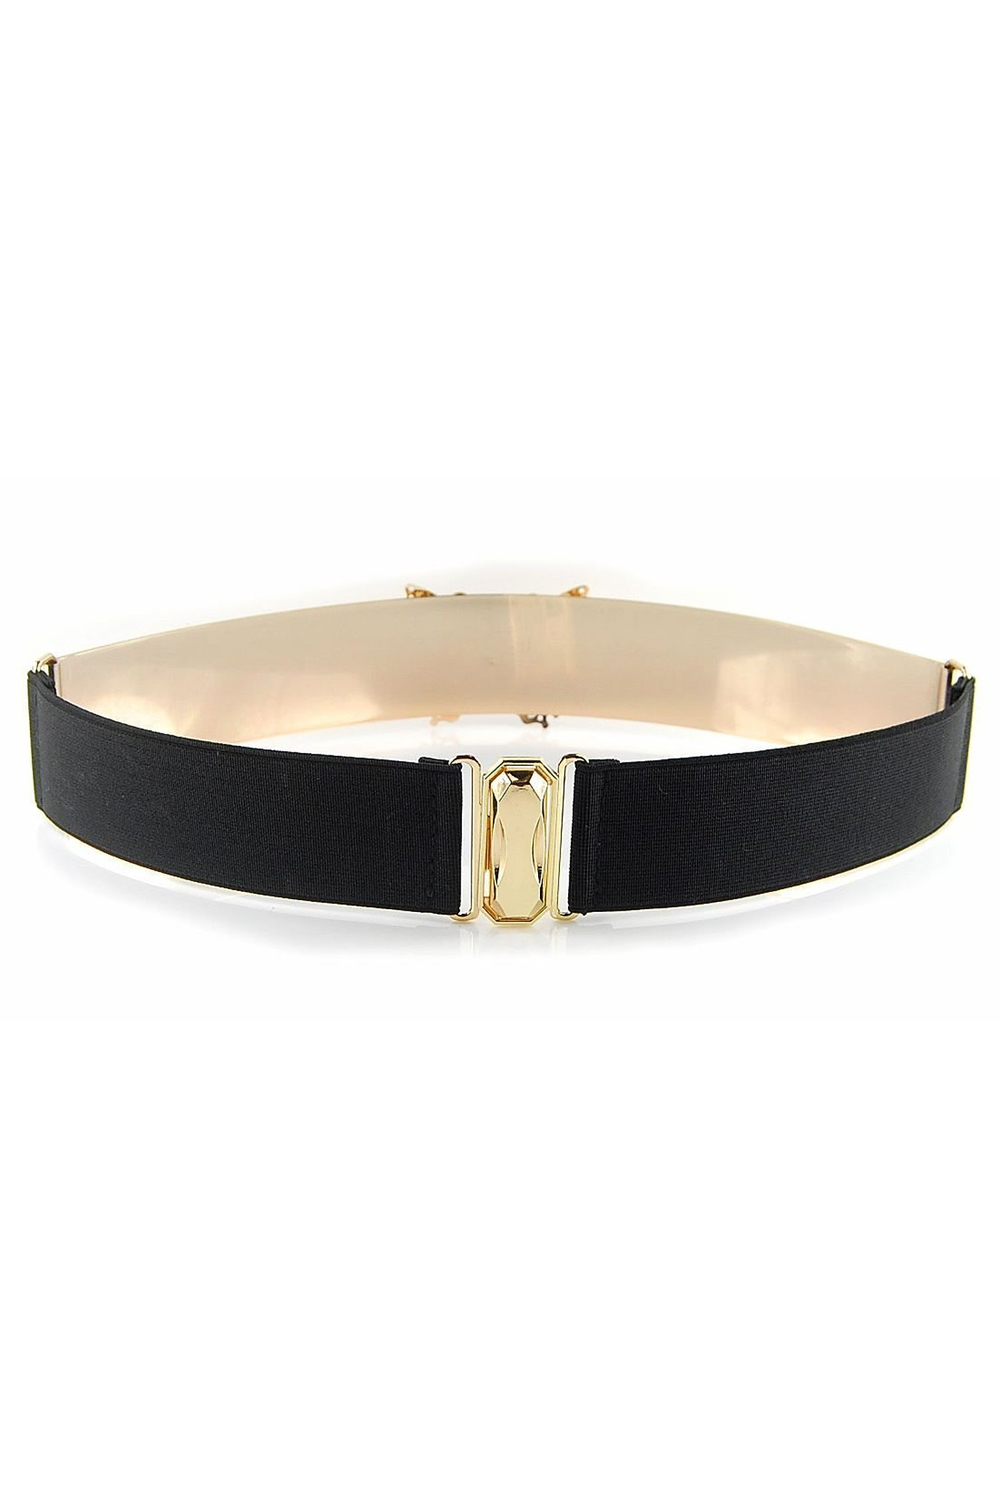 Find gold metal belts for women at ShopStyle. Shop the latest collection of gold metal belts for women from the most popular stores - all in one.